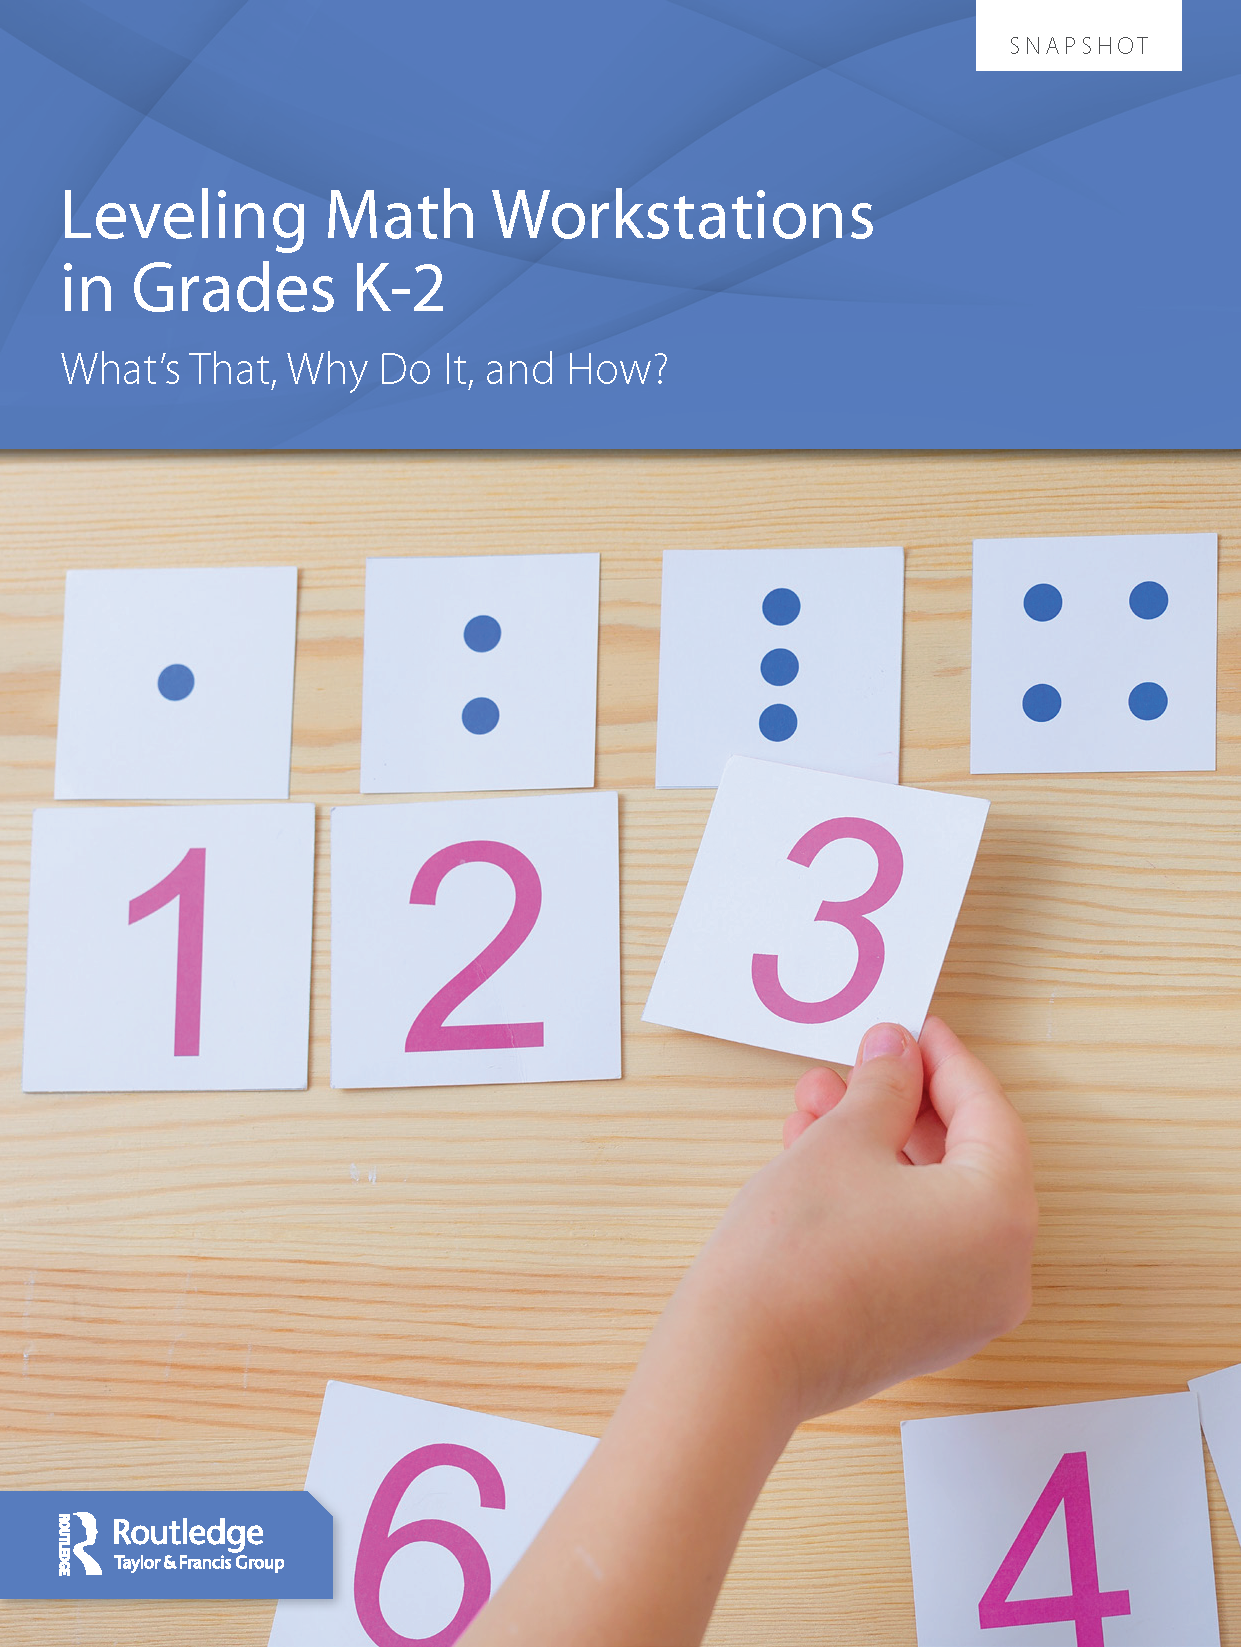 Leveling Math Workstations in Grades K-2: What's That, Why Do It, and How?